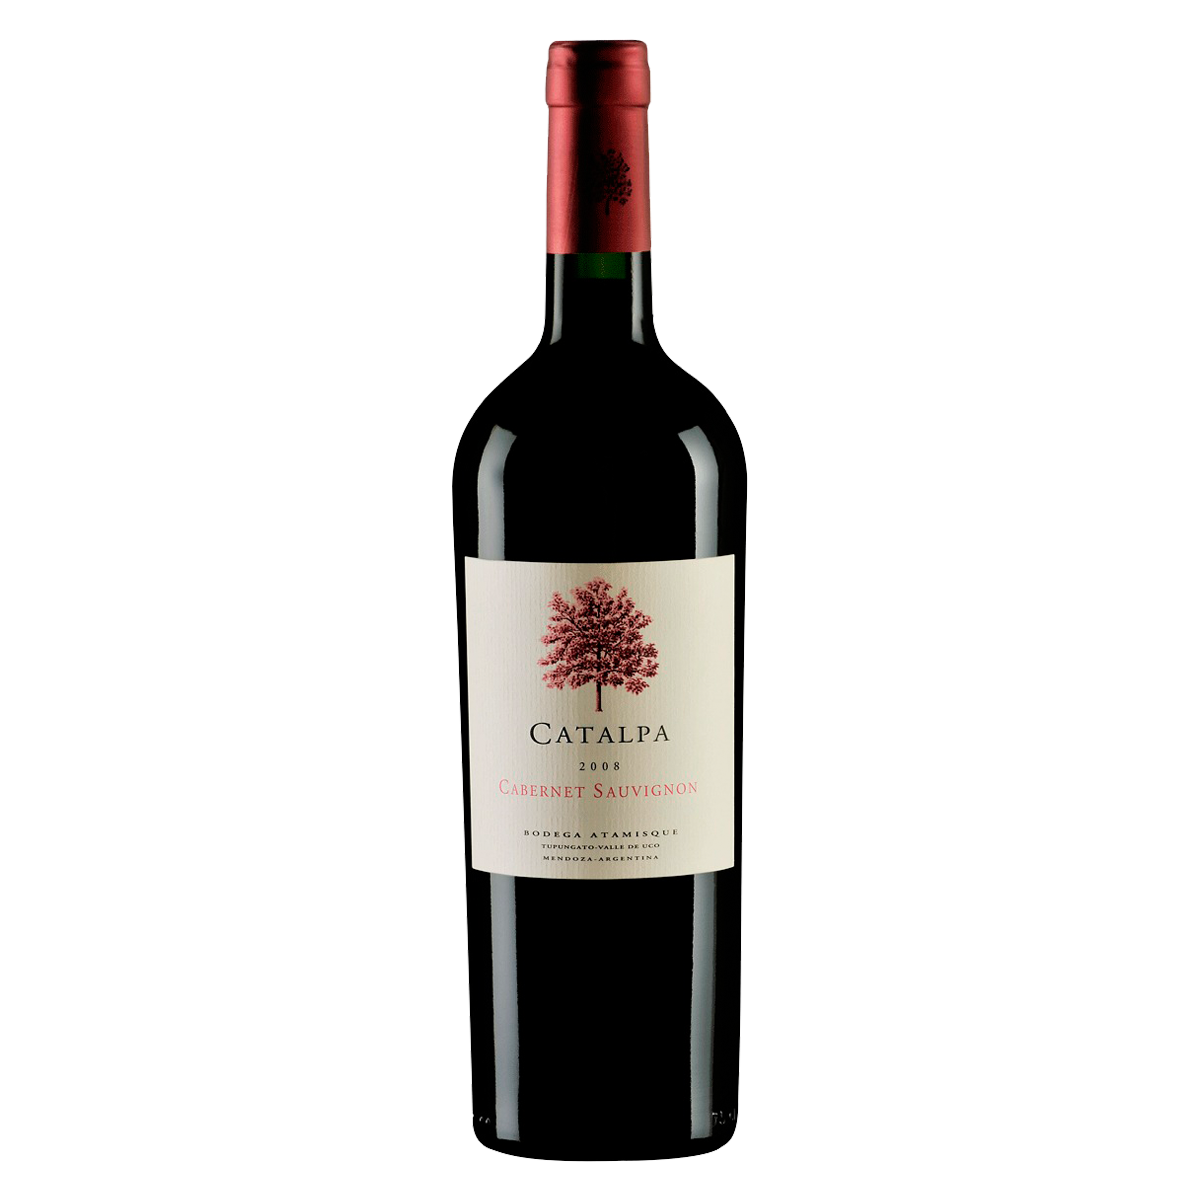 Catalpa, de Bodega Atamisque